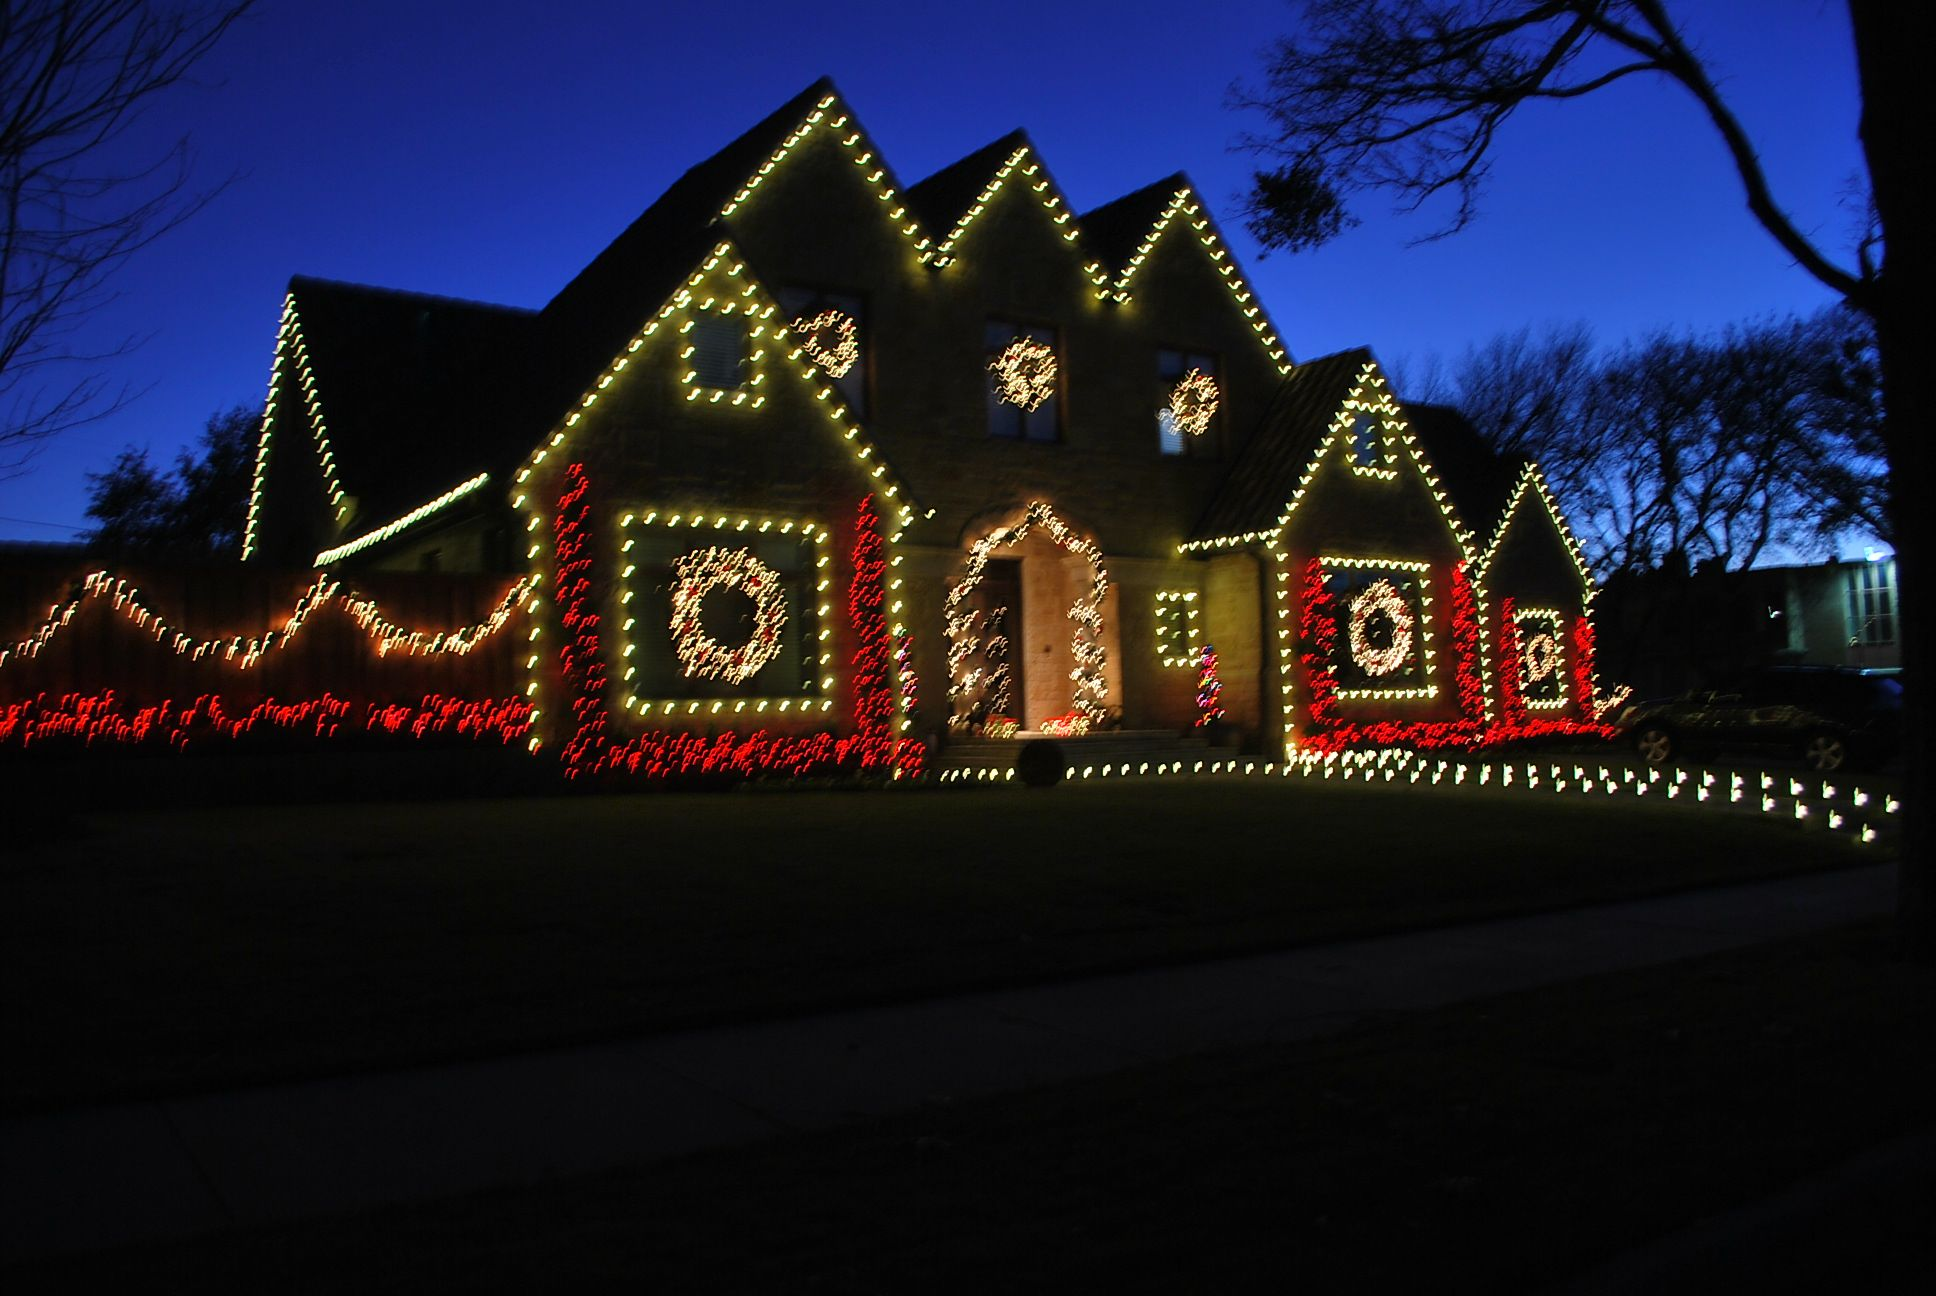 Christmas Windows Dallas Outline Many Sections Of Your Home With C9 Lights The Roof S Windo Best Christmas Lights Outdoor Christmas Lights Christmas Lights